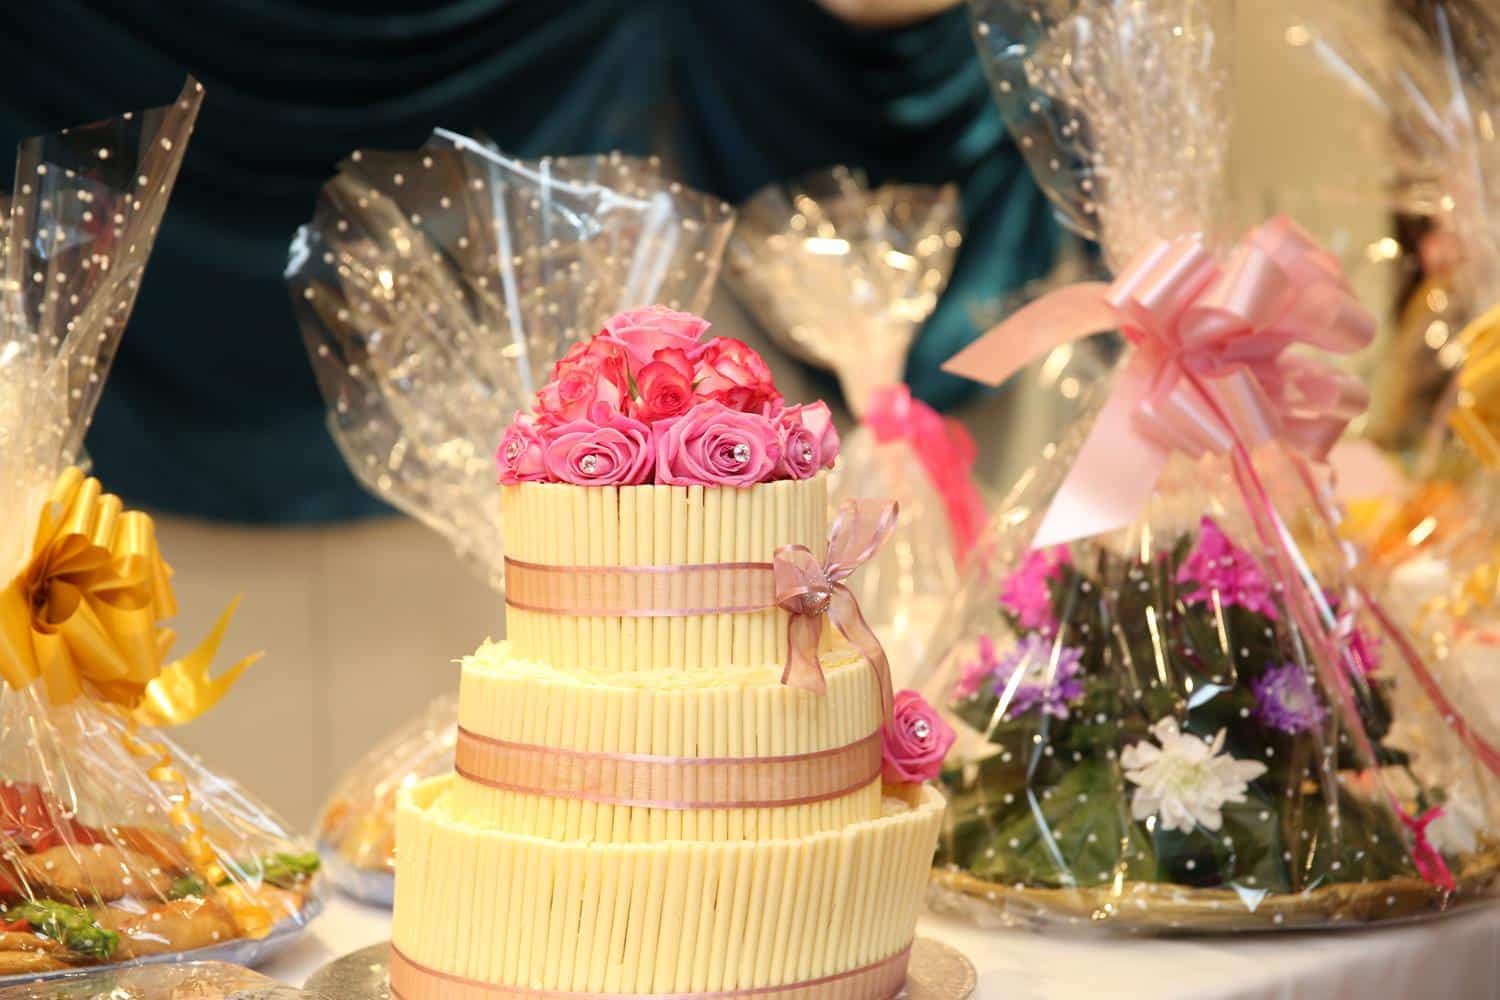 Straw Cake at Asian Wedding Photography by MAKSAM Photography